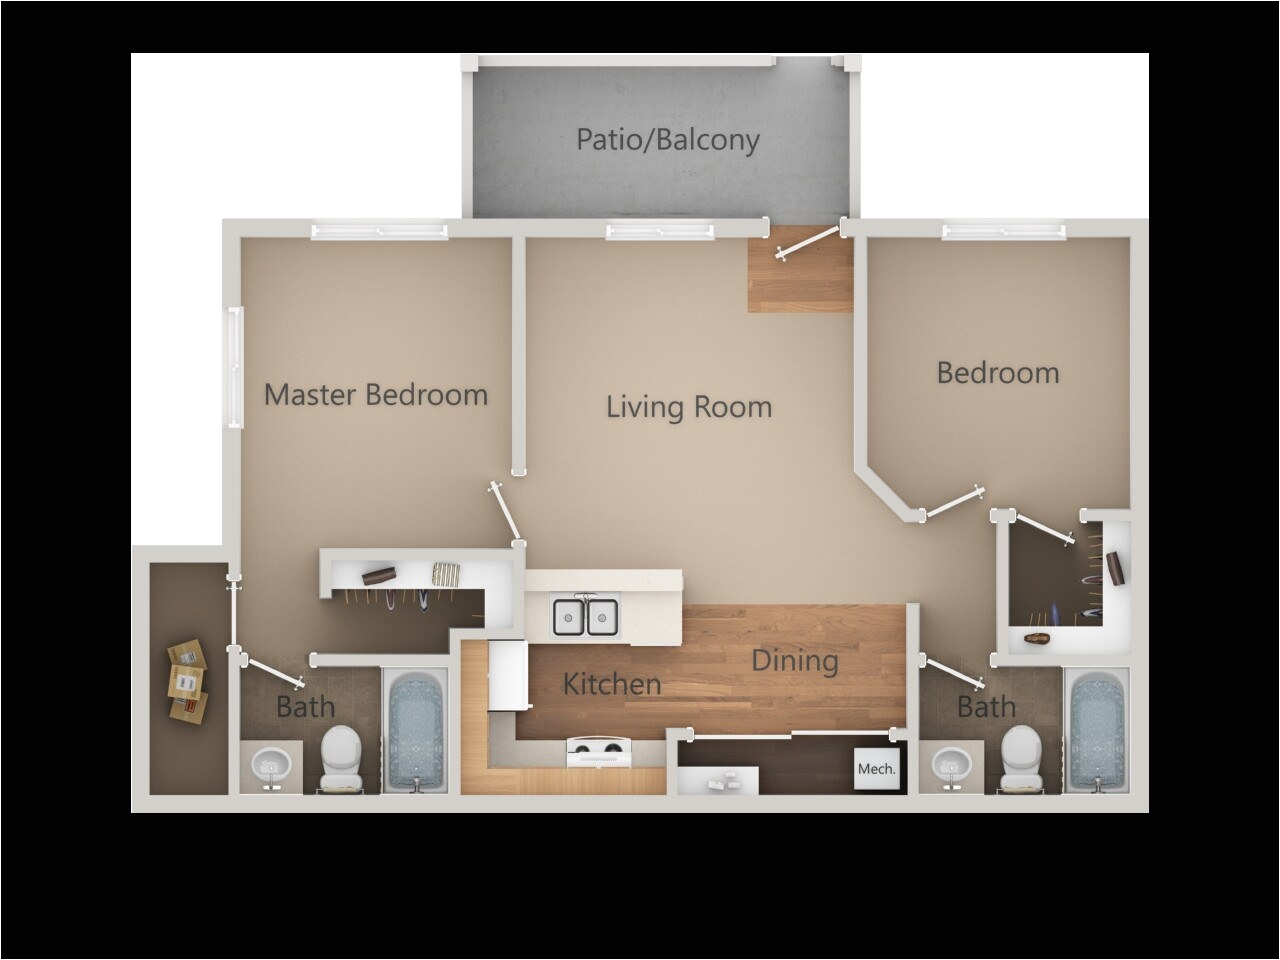 two bedroom apartments near me best of south sacramento apartments for rent aspen park of 40